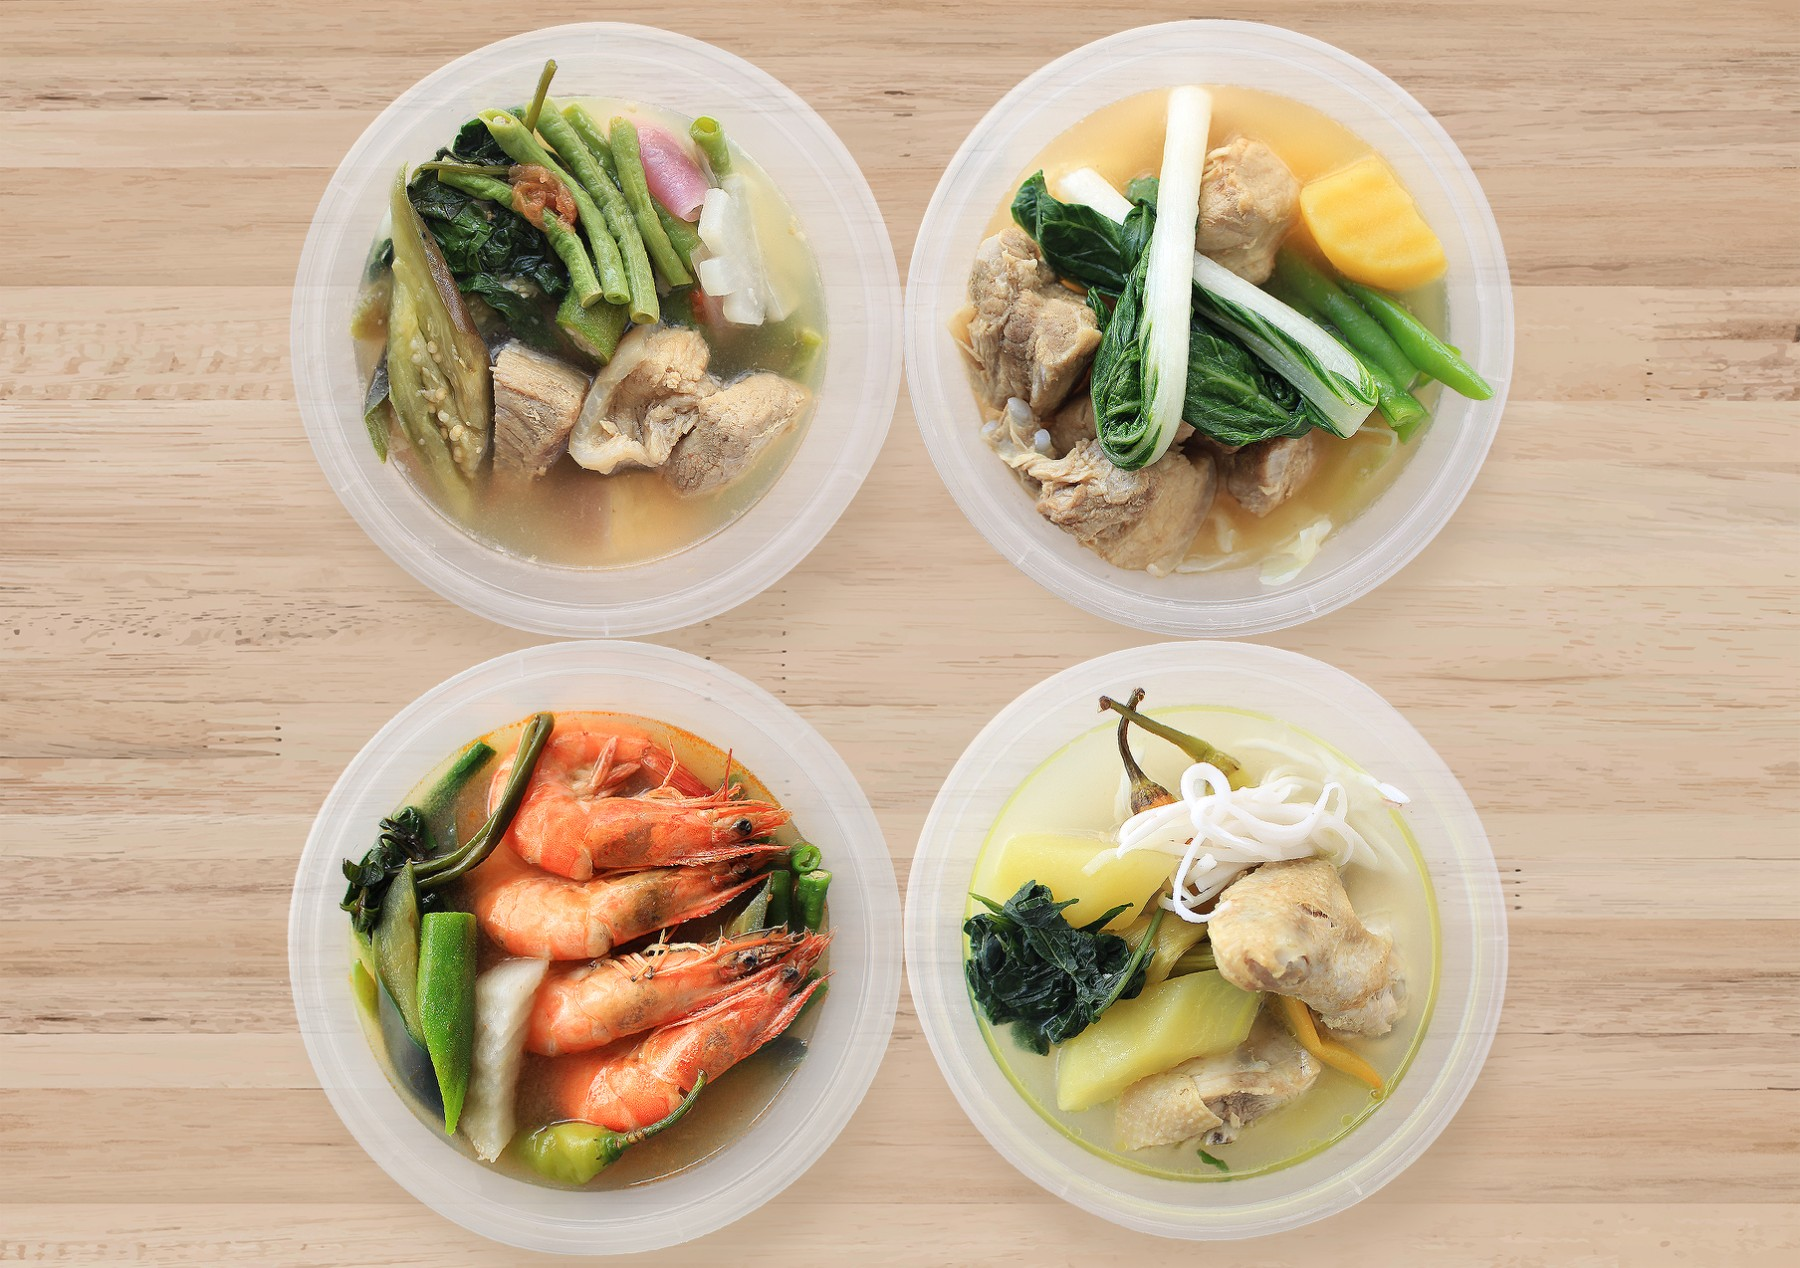 Kabayan Hotel Food To Go platters